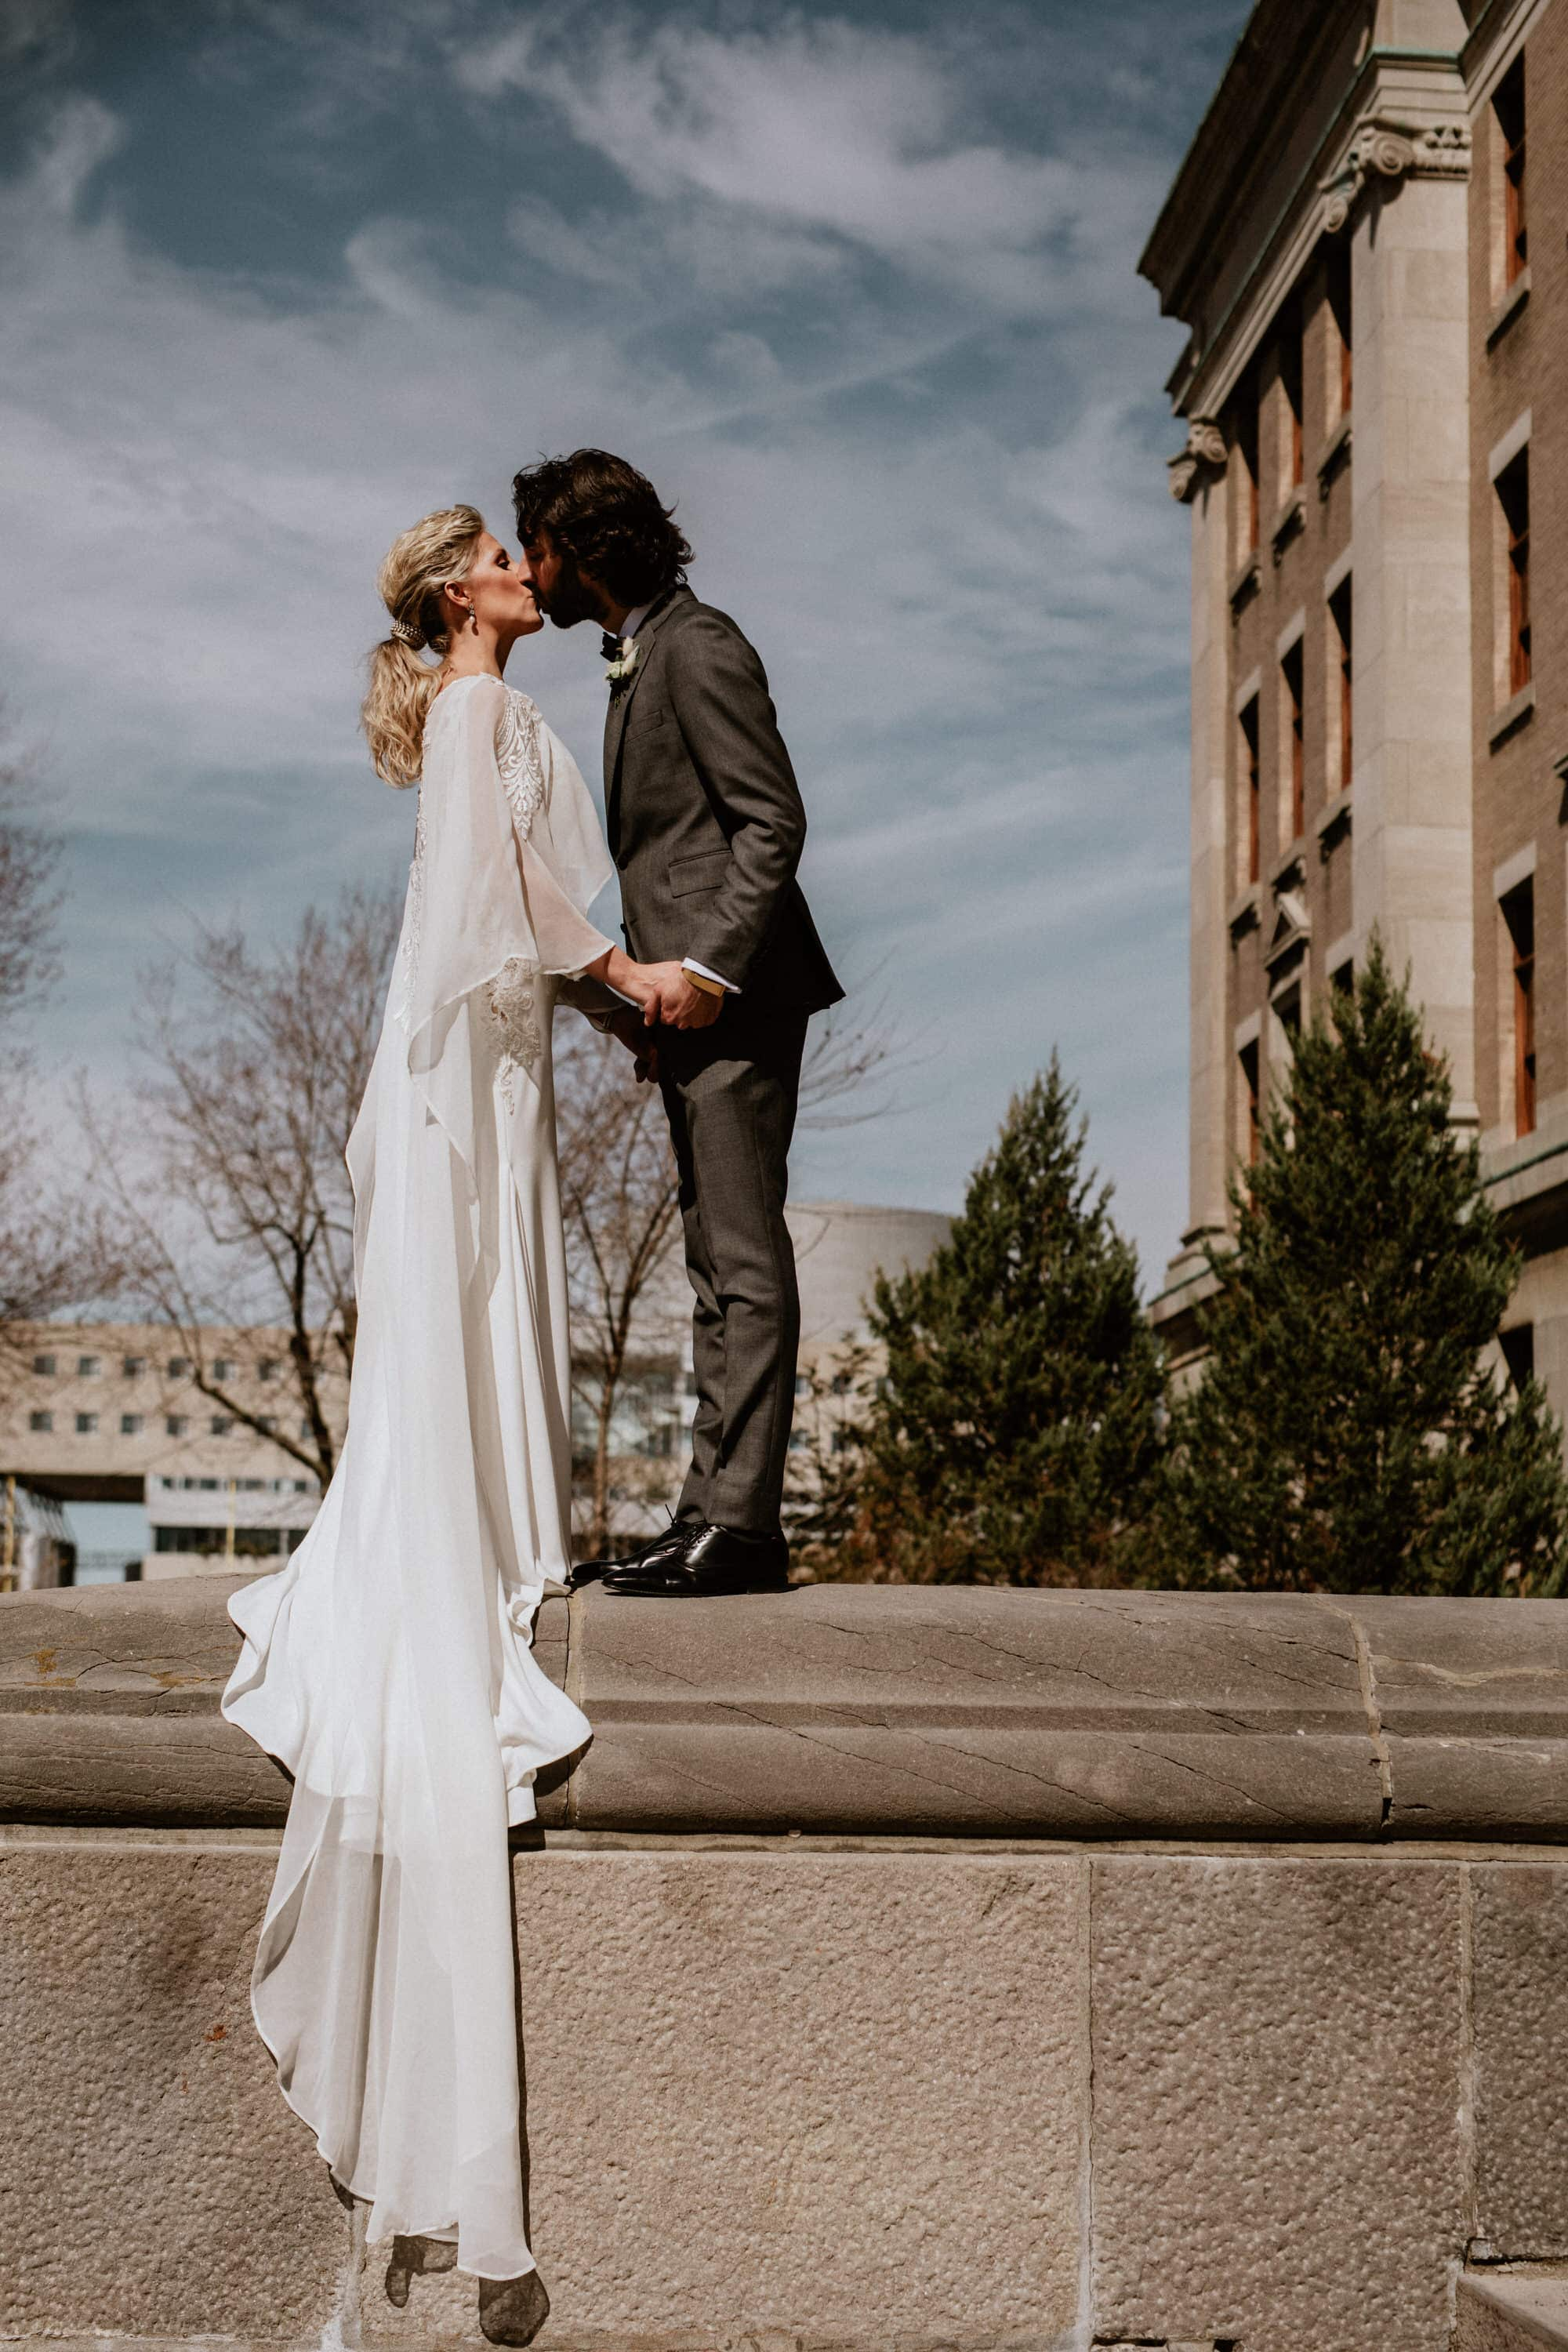 Entrepots Dominion Wedding In Montreal - Epic kiss outside of church - Wedding Photographer Brent Calis